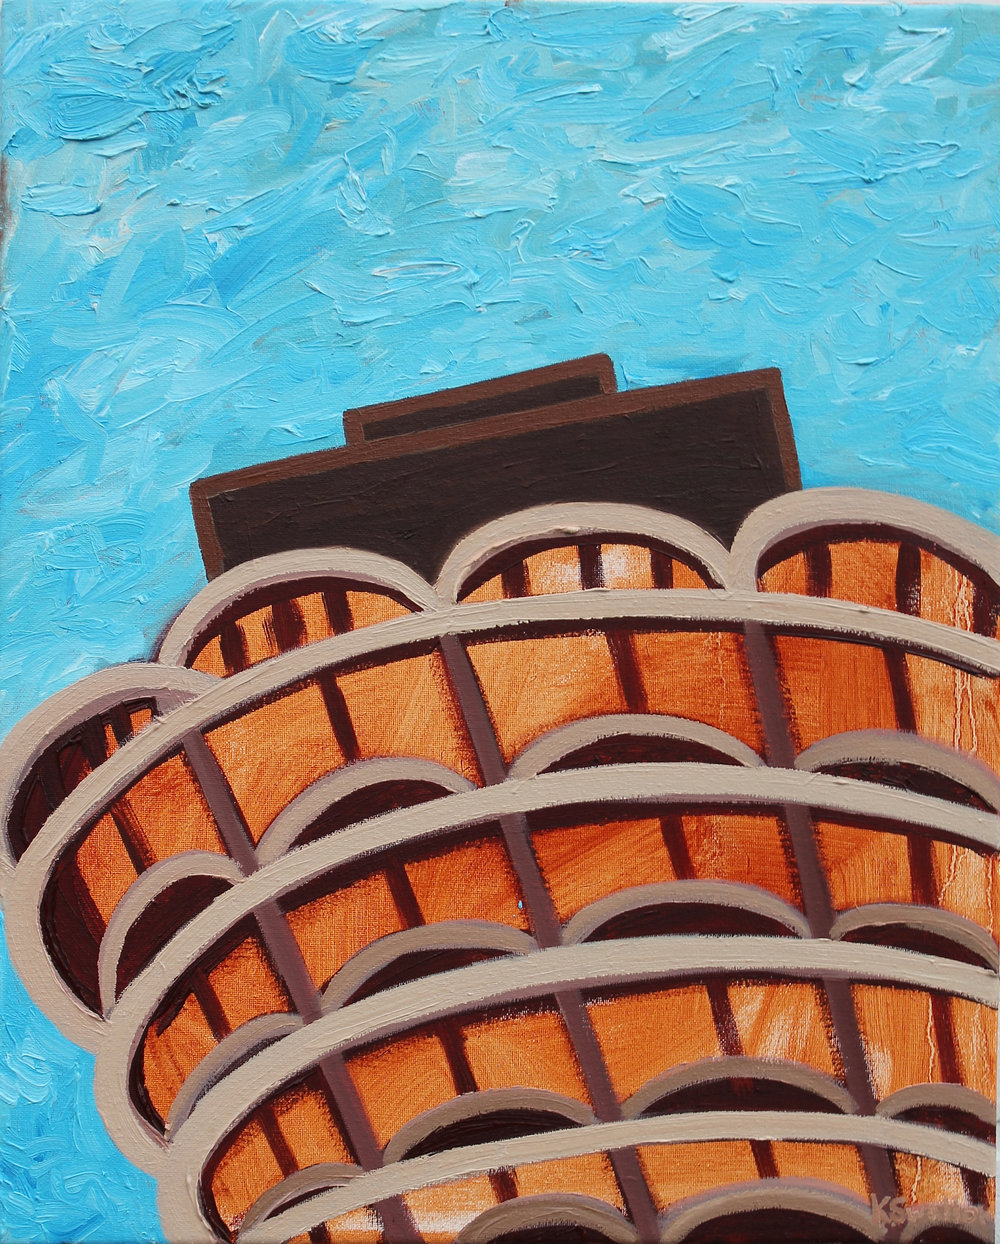 Marina Towers #4, oil on canvas, 20x16, 2017, AVAILABLE